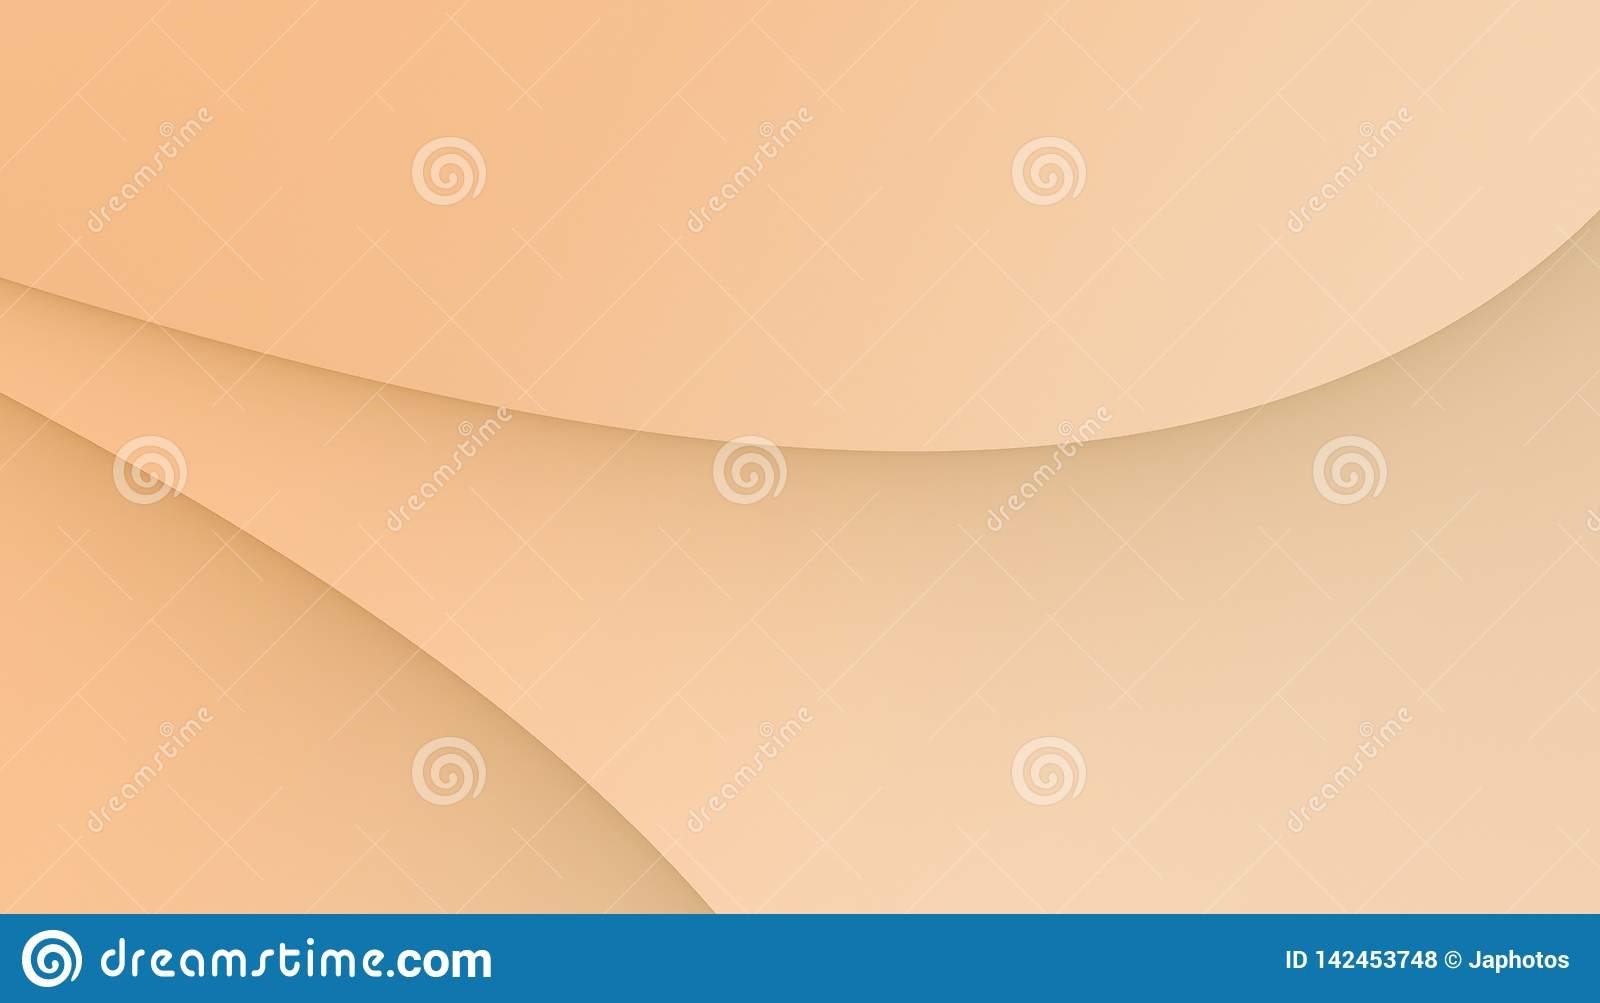 Light coral peach smooth curves abstract business background wallpaper illustration